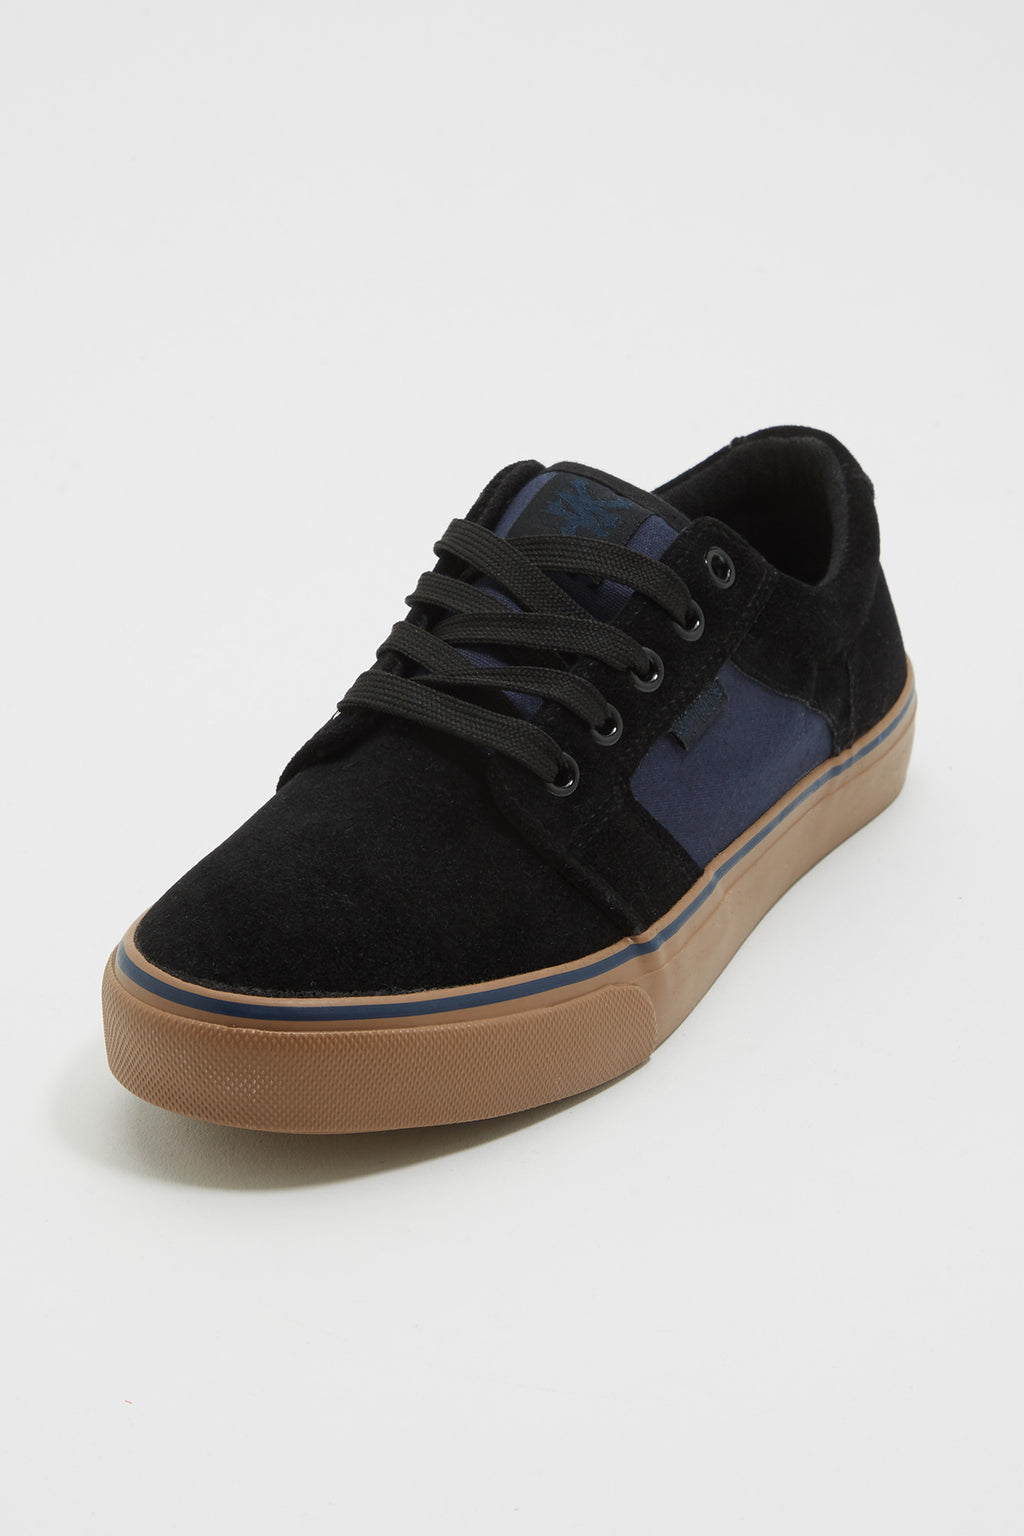 Zoo York Boys Blue and Black Canvas Lace Up Shoes